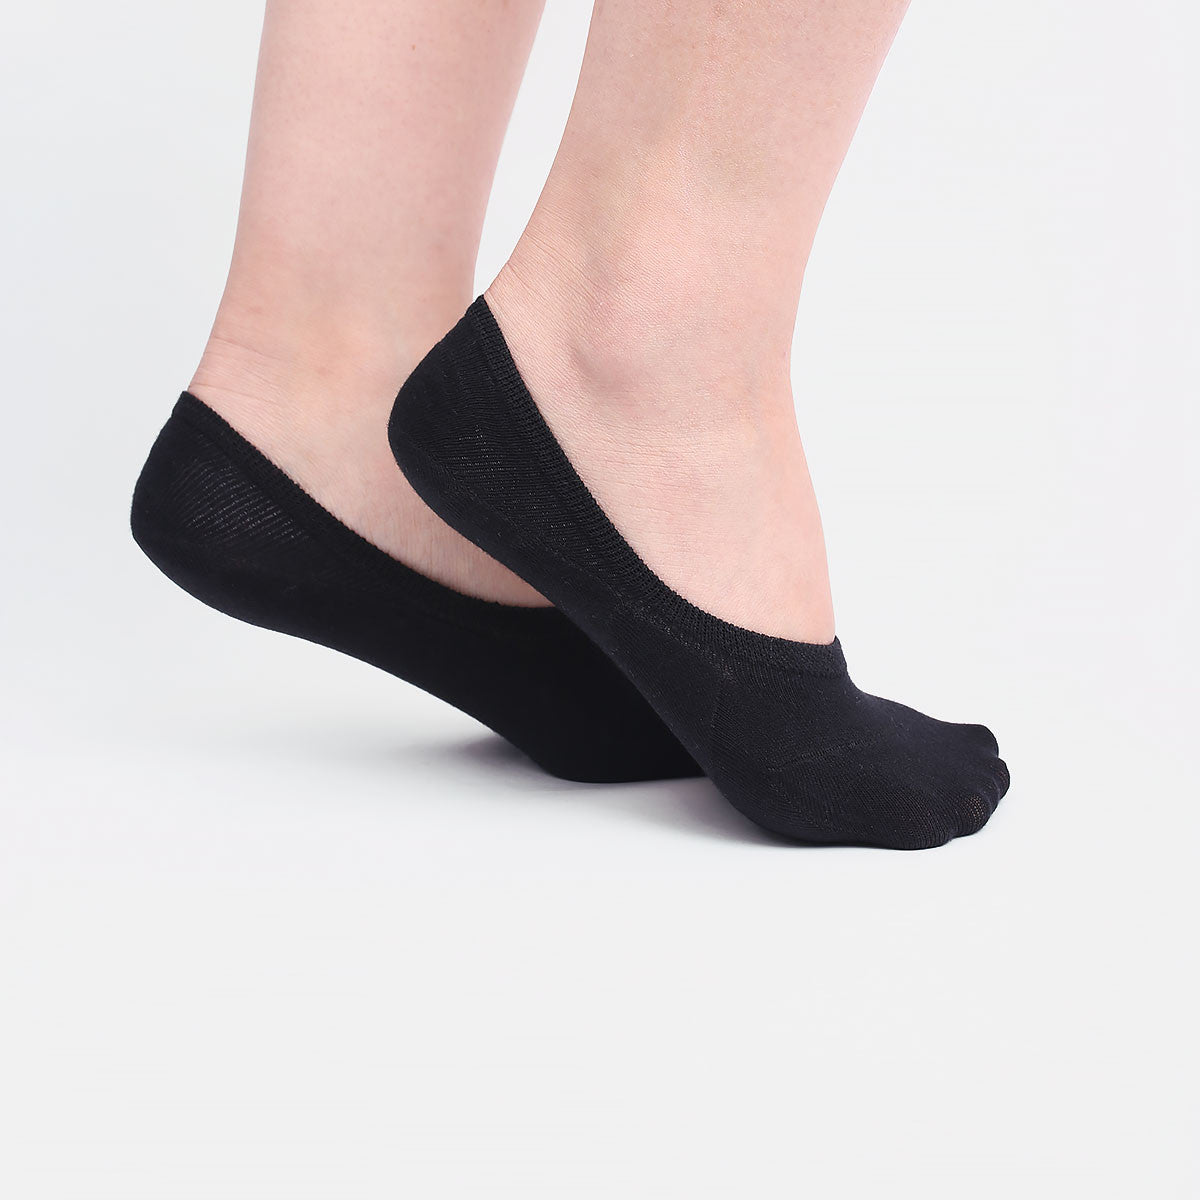 Black Invisible Socks (2 pairs)